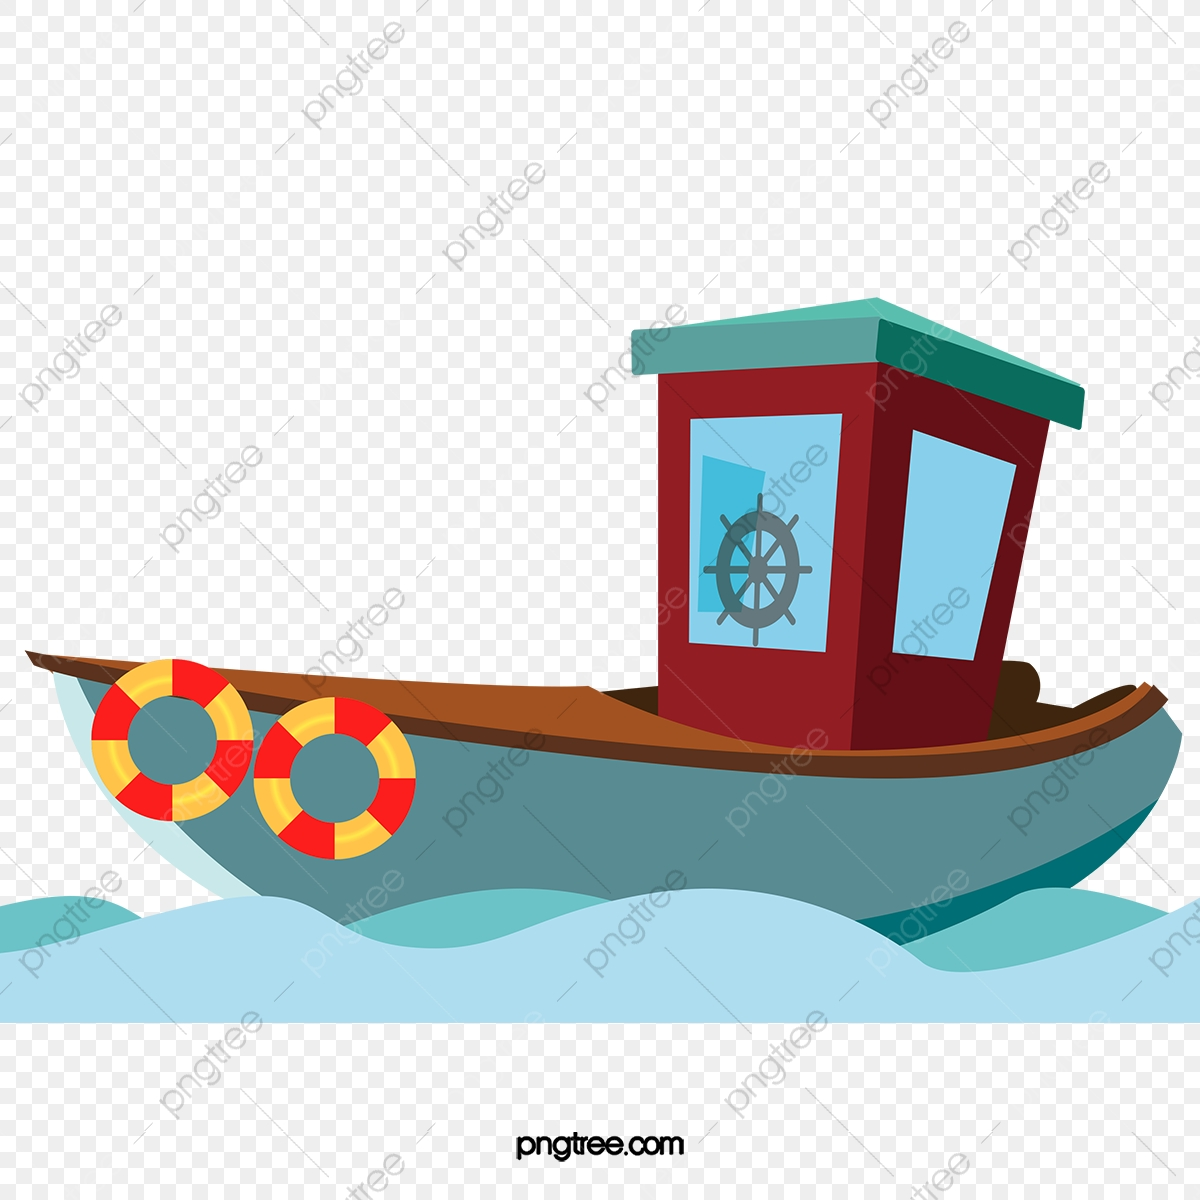 picture royalty free download Boats clipart vector. Fisherman fishing boat material.